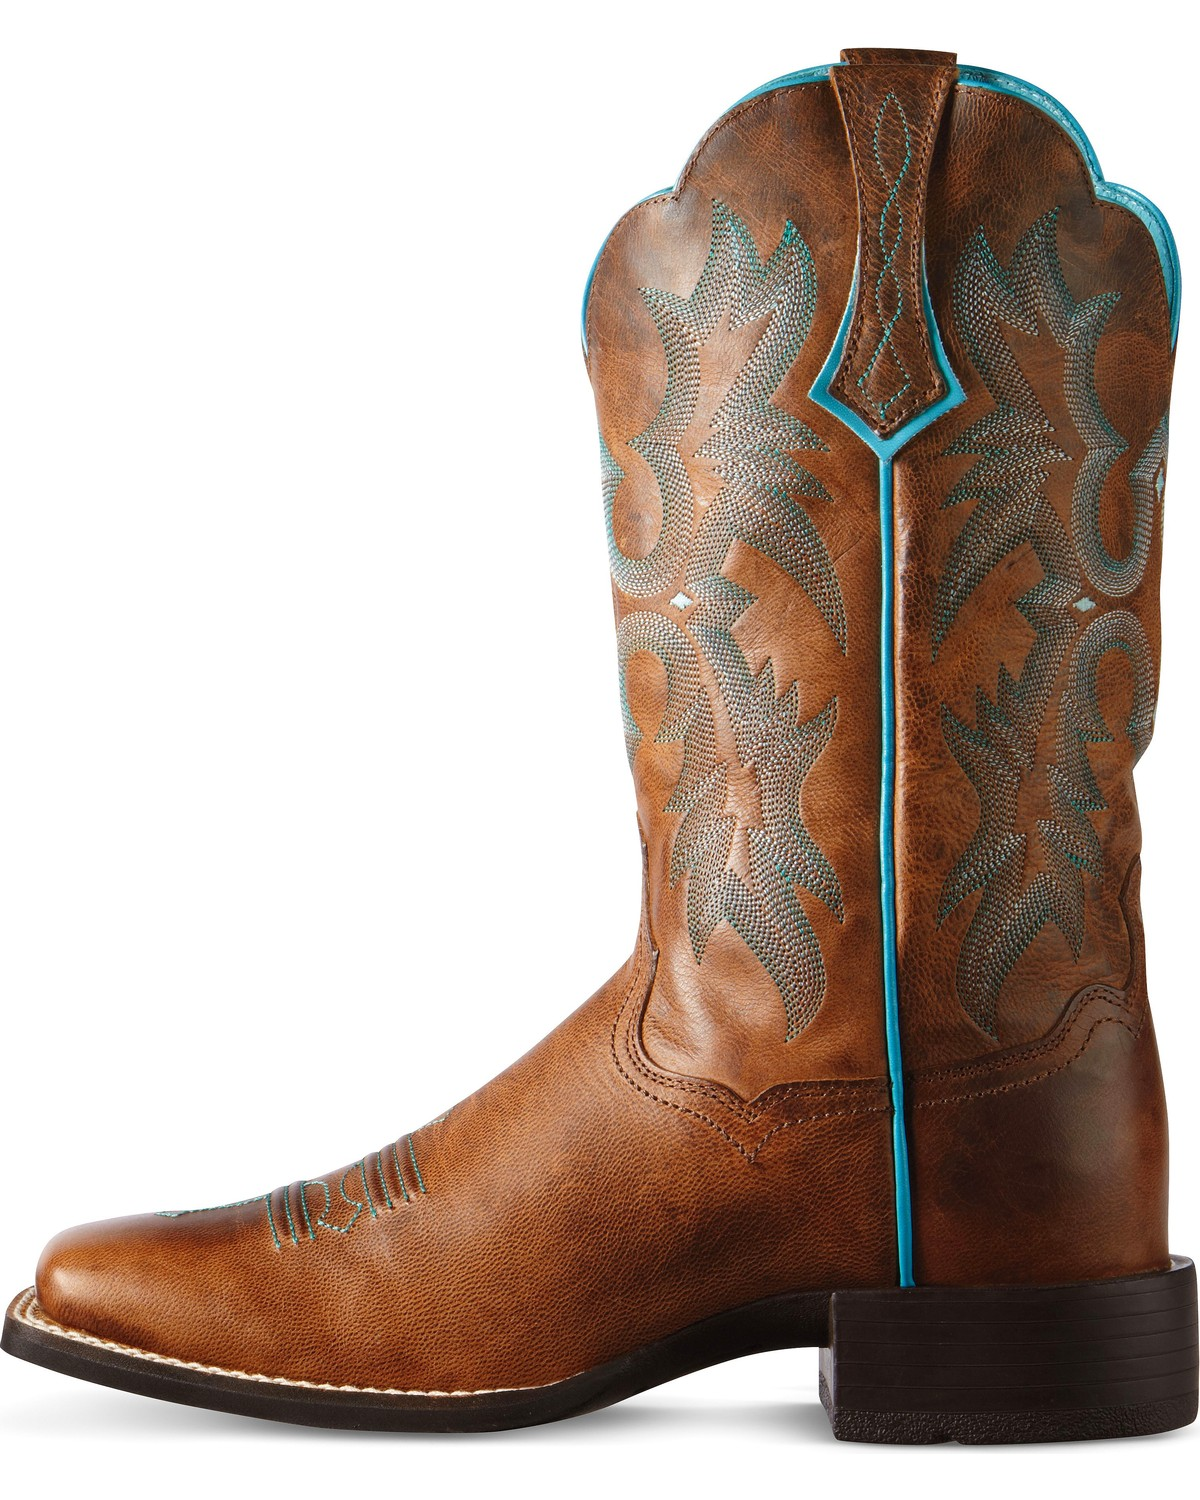 Ariat Brown Tombstone Boots - Wide Square Toe - Country Outfitter